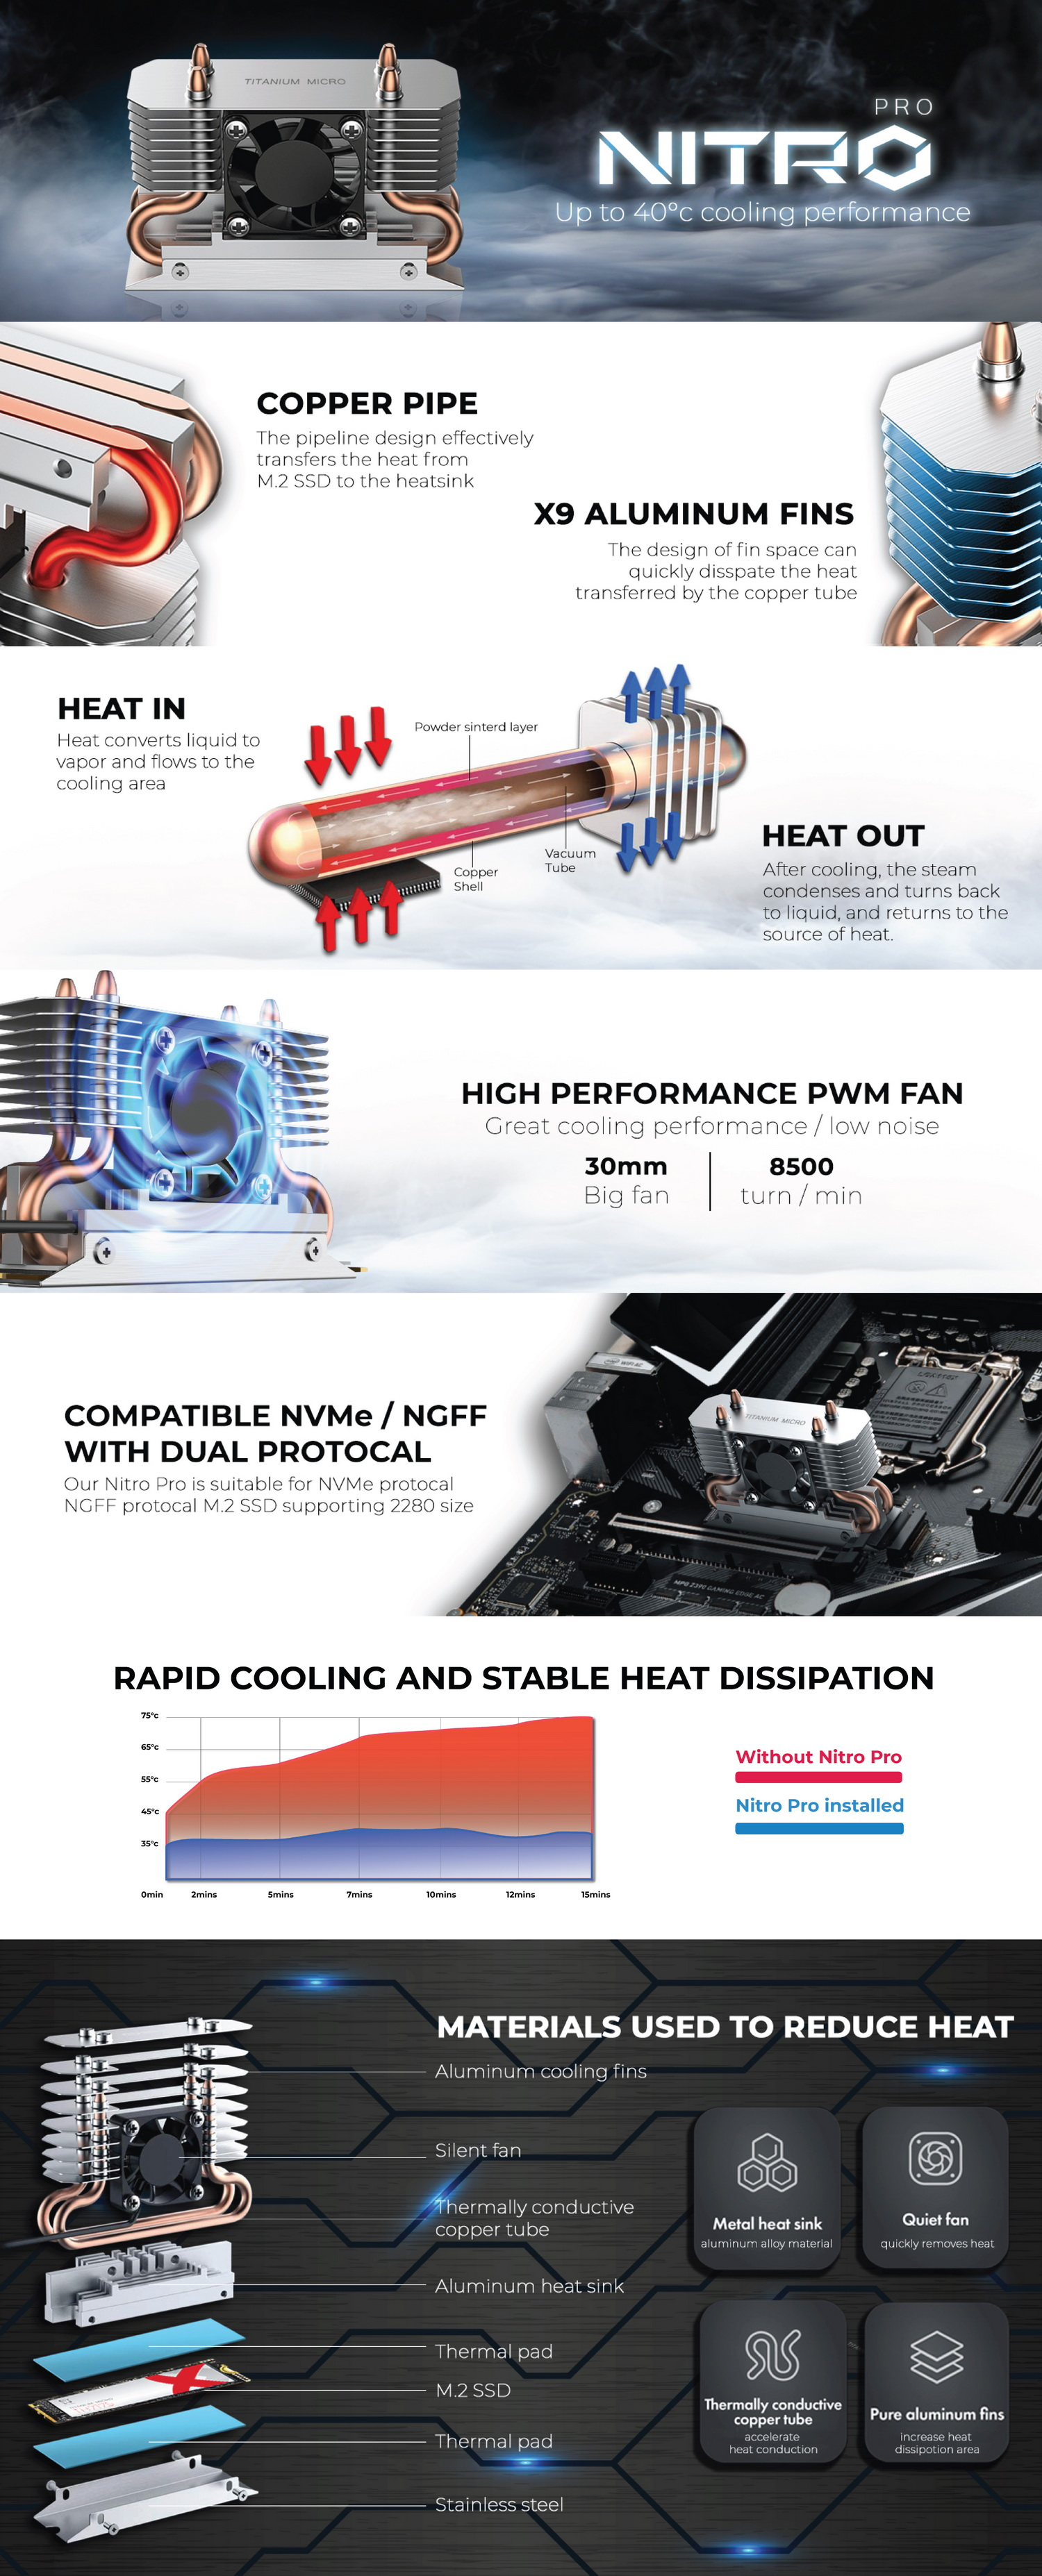 Nitro Pro M.2 NVMe Heatsink cooler can reduce up to 40 degree Celsius. made of aluminum, copper, and stainless steel.